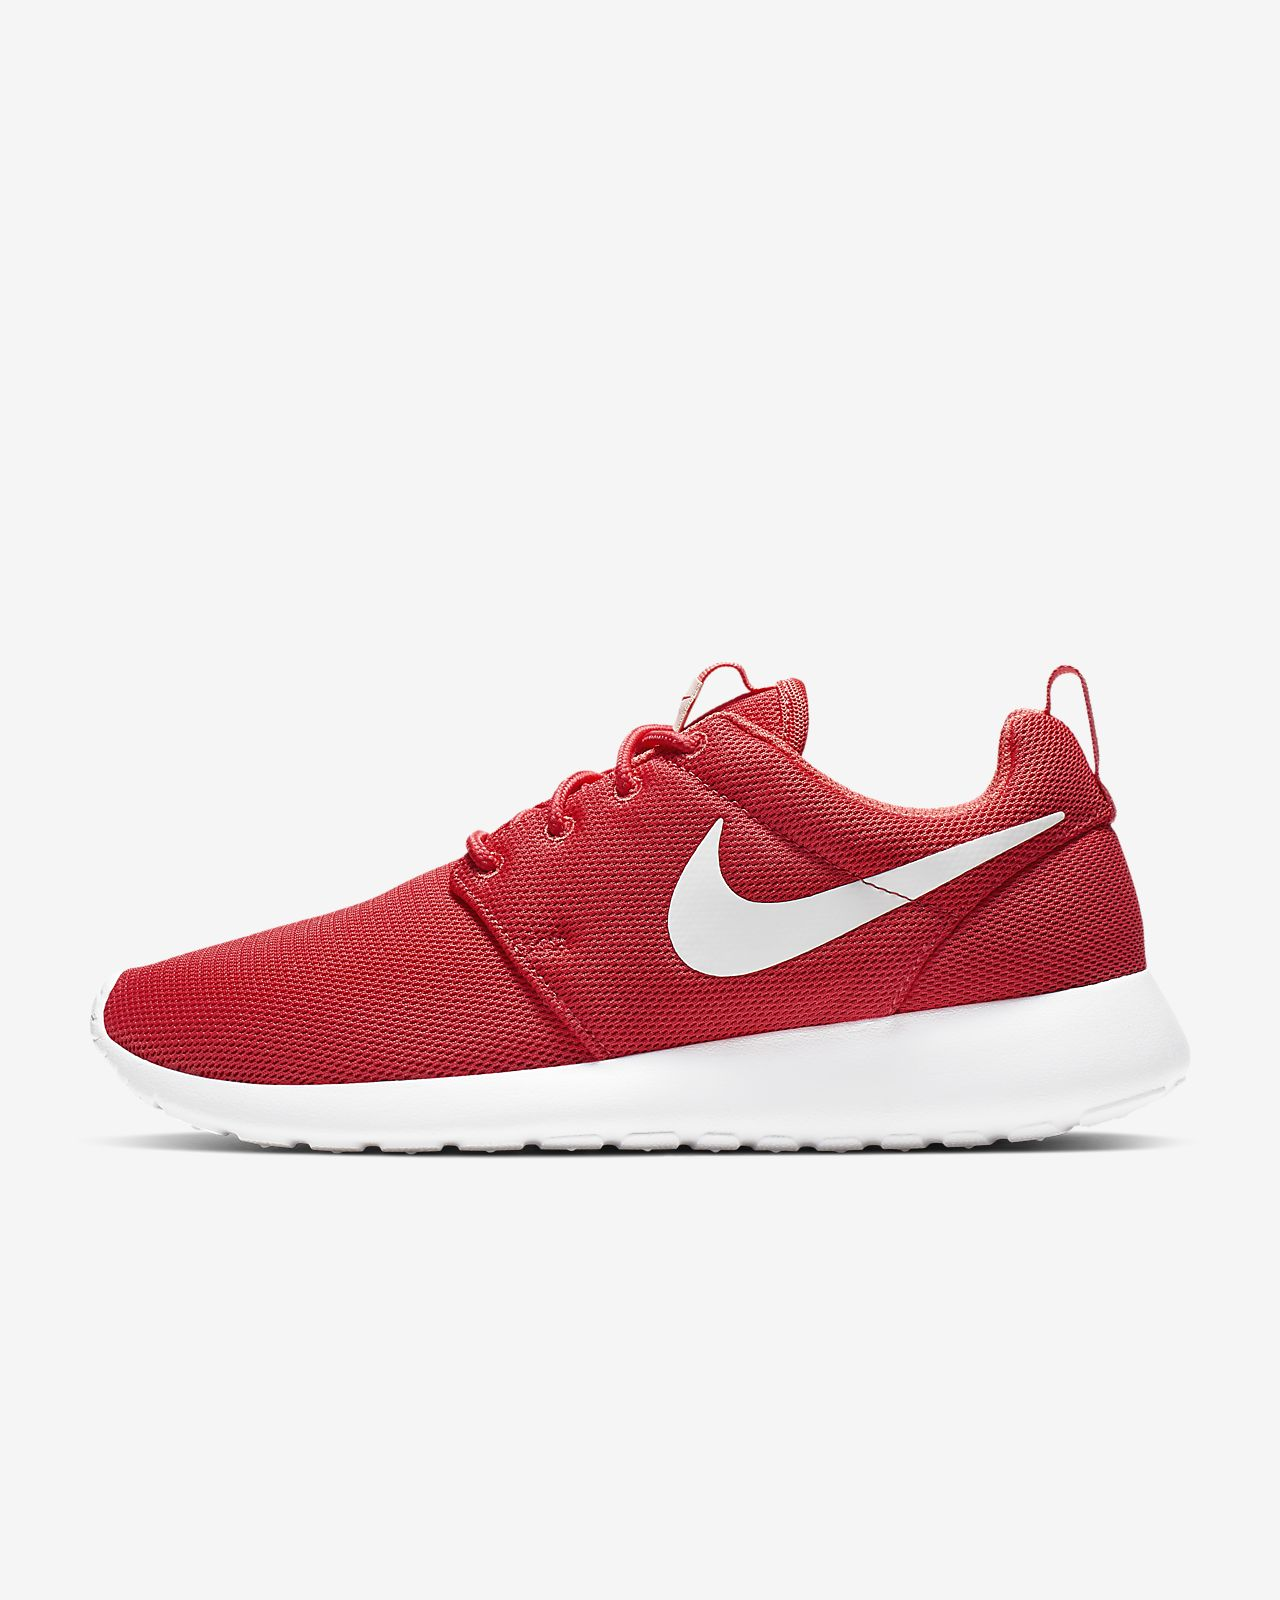 8dec0b3f3ae3 Nike Roshe One Women s Shoe. Nike.com